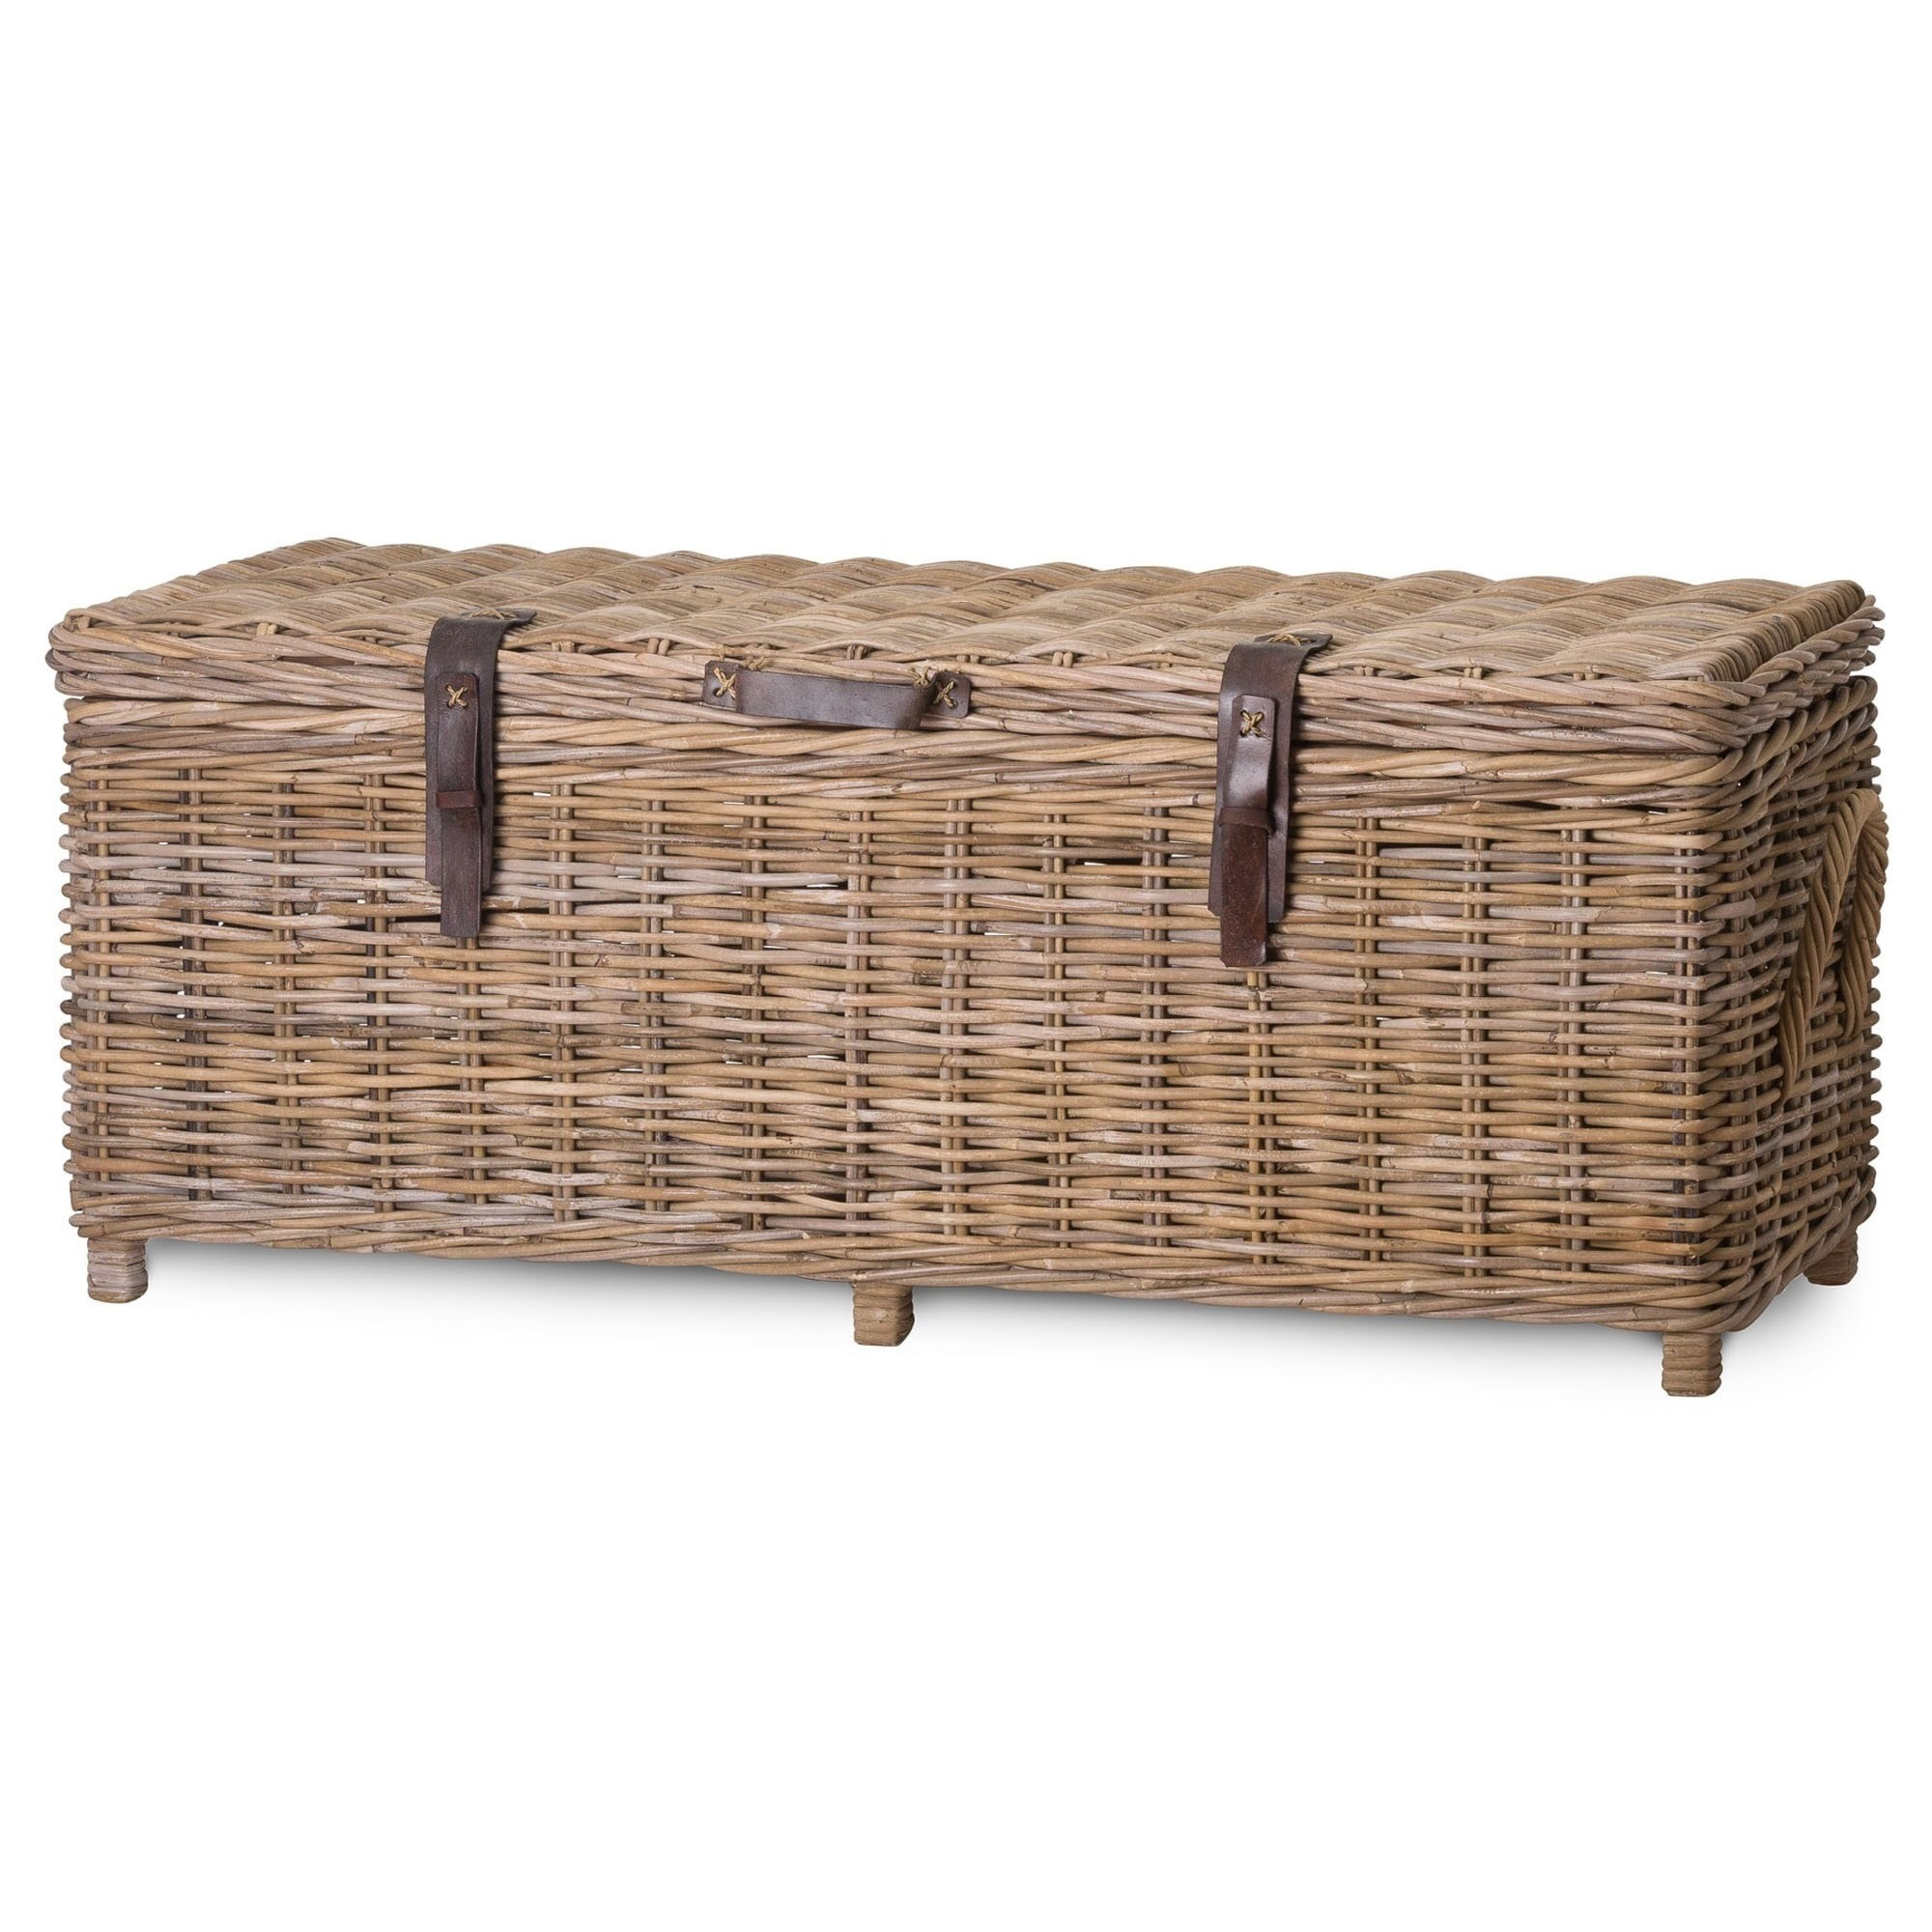 - The Bali Full Rattan Trunk With Leather Straps Storage Trunk